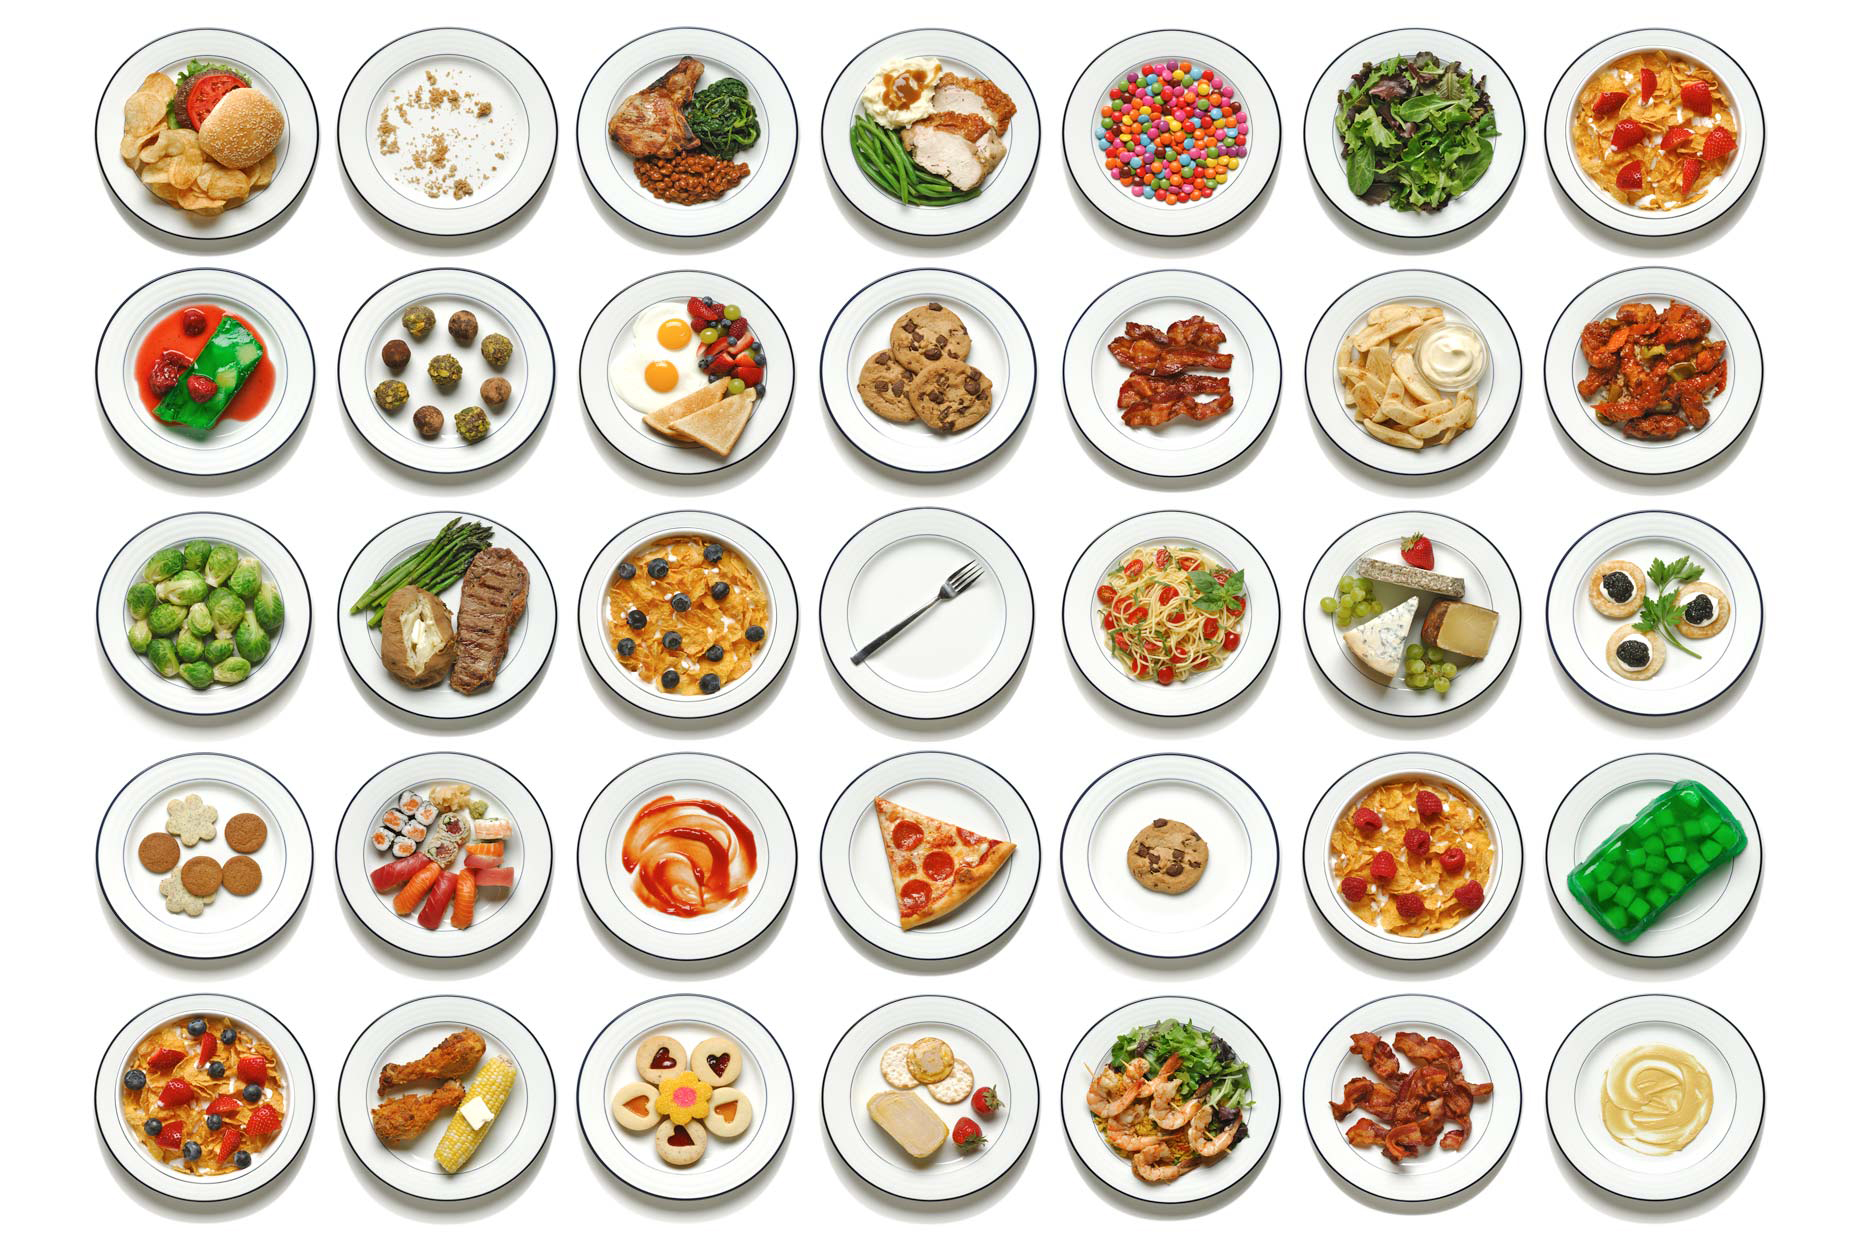 35 different white plates with different food items served. Dinner lunch breakfast healthy unhealthy colorful and a variety of choices to eat